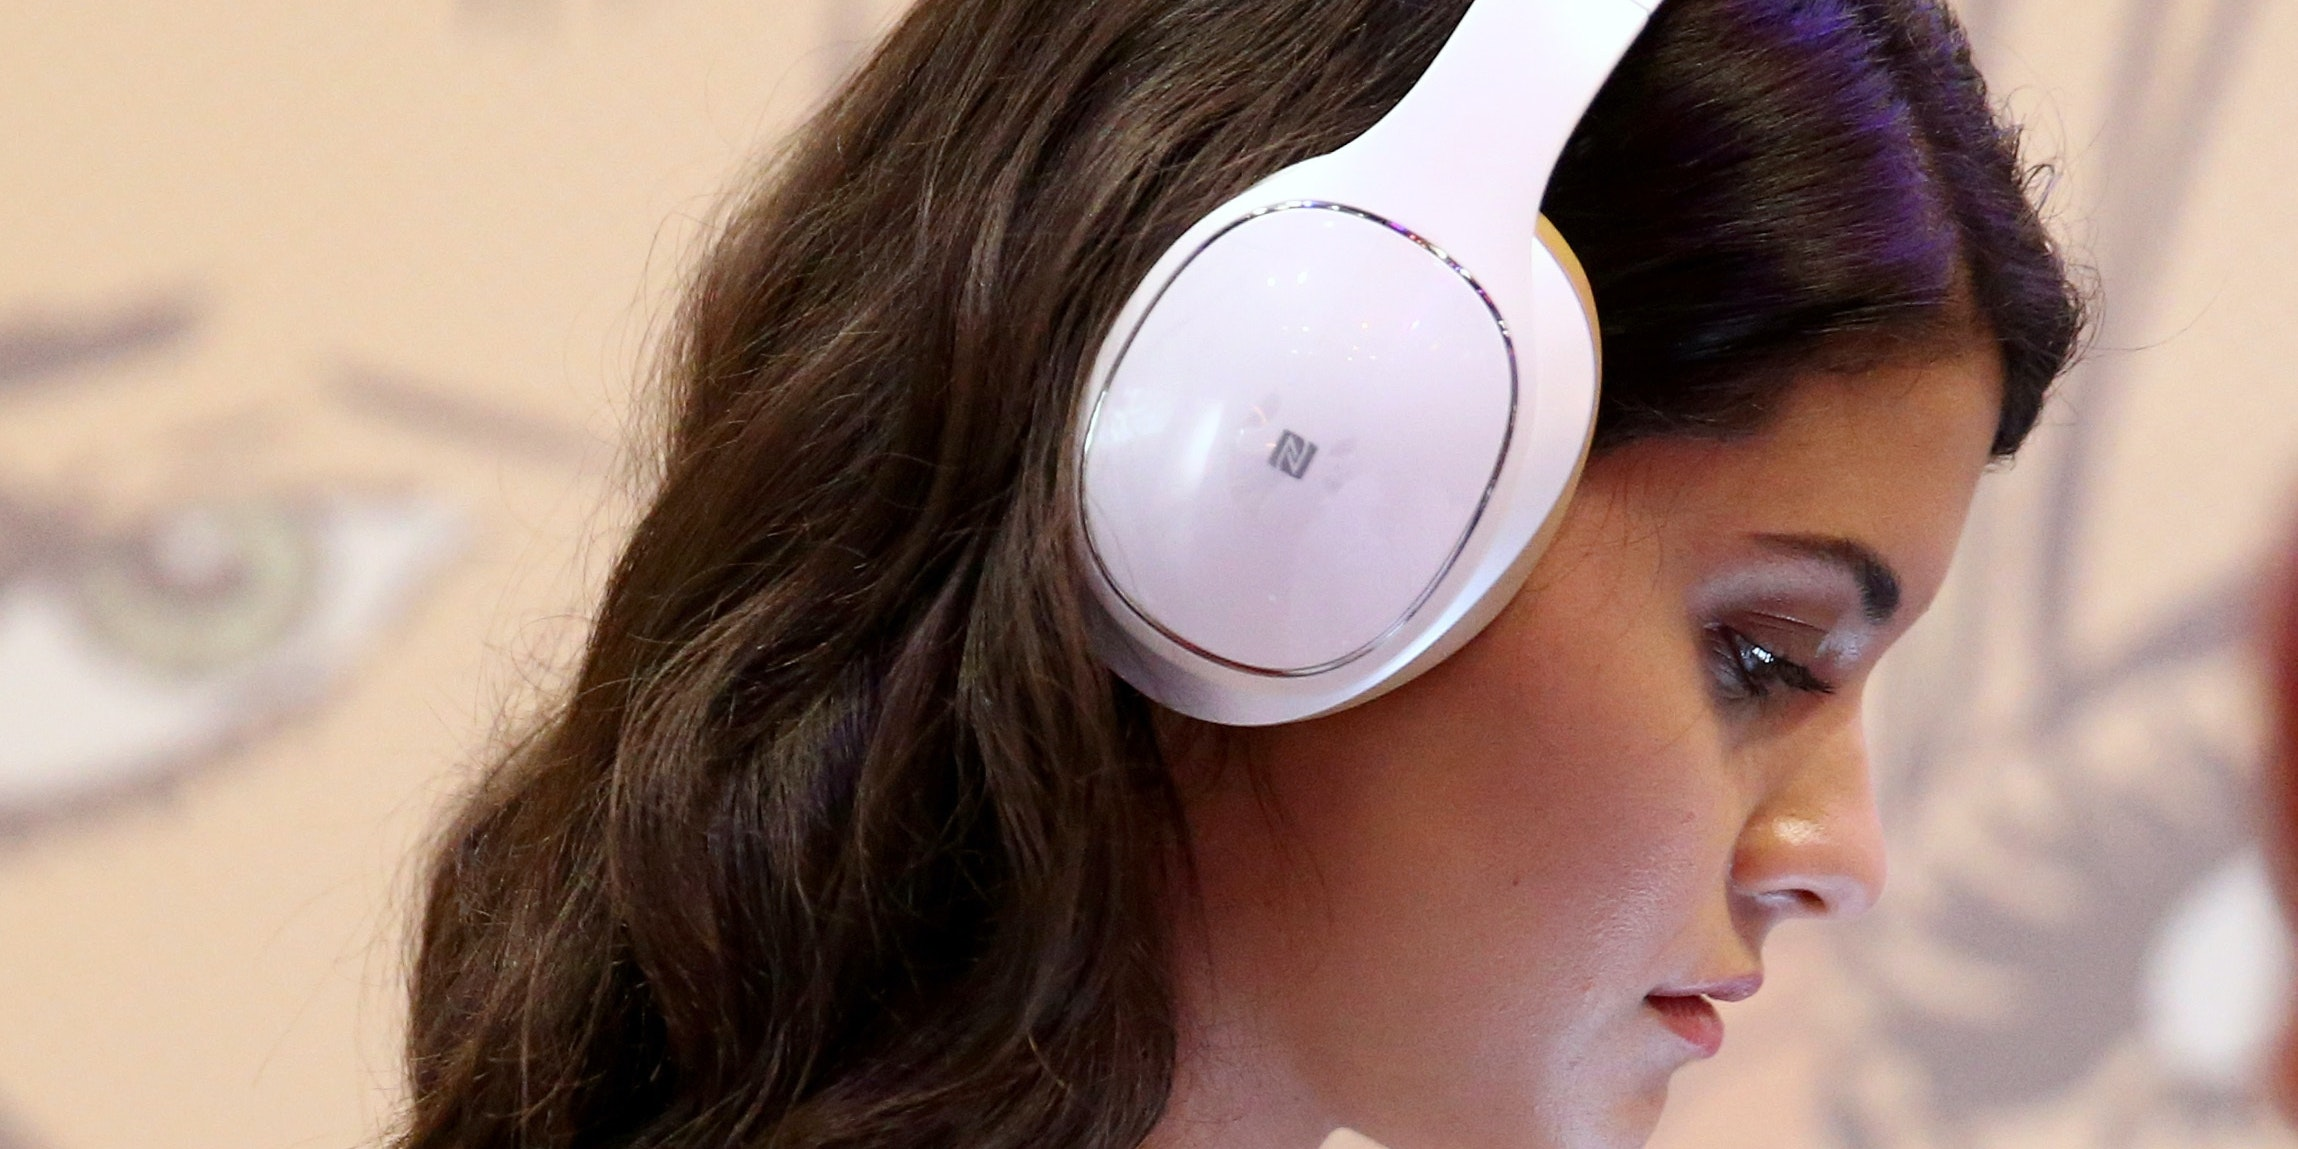 SAN DIEGO, CA - JULY 24:  Actress Sofia Black D'Elia checks out Samsung's new Level Over bluetooth headphones at the Samsung Galaxy VIP Lounge at Comic-Con International 2014 at Hard Rock Hotel San Diego on July 24, 2014 in San Diego, California.  (Photo by Imeh Akpanudosen/Getty Images for Samsung)